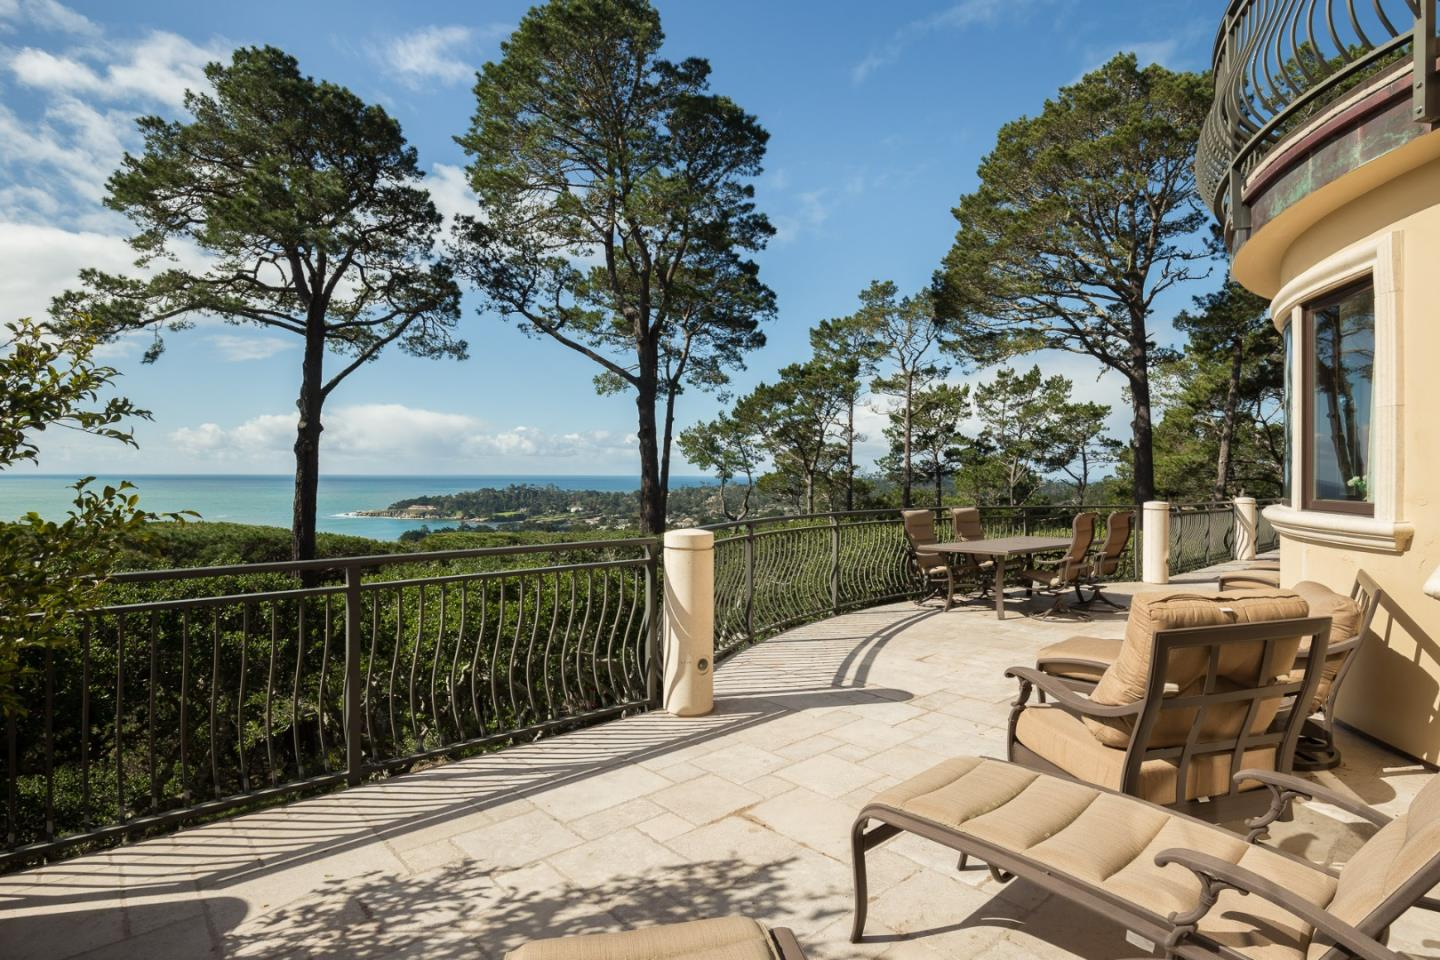 Pebble Beach Homes for Sale | Today Sotheby's International